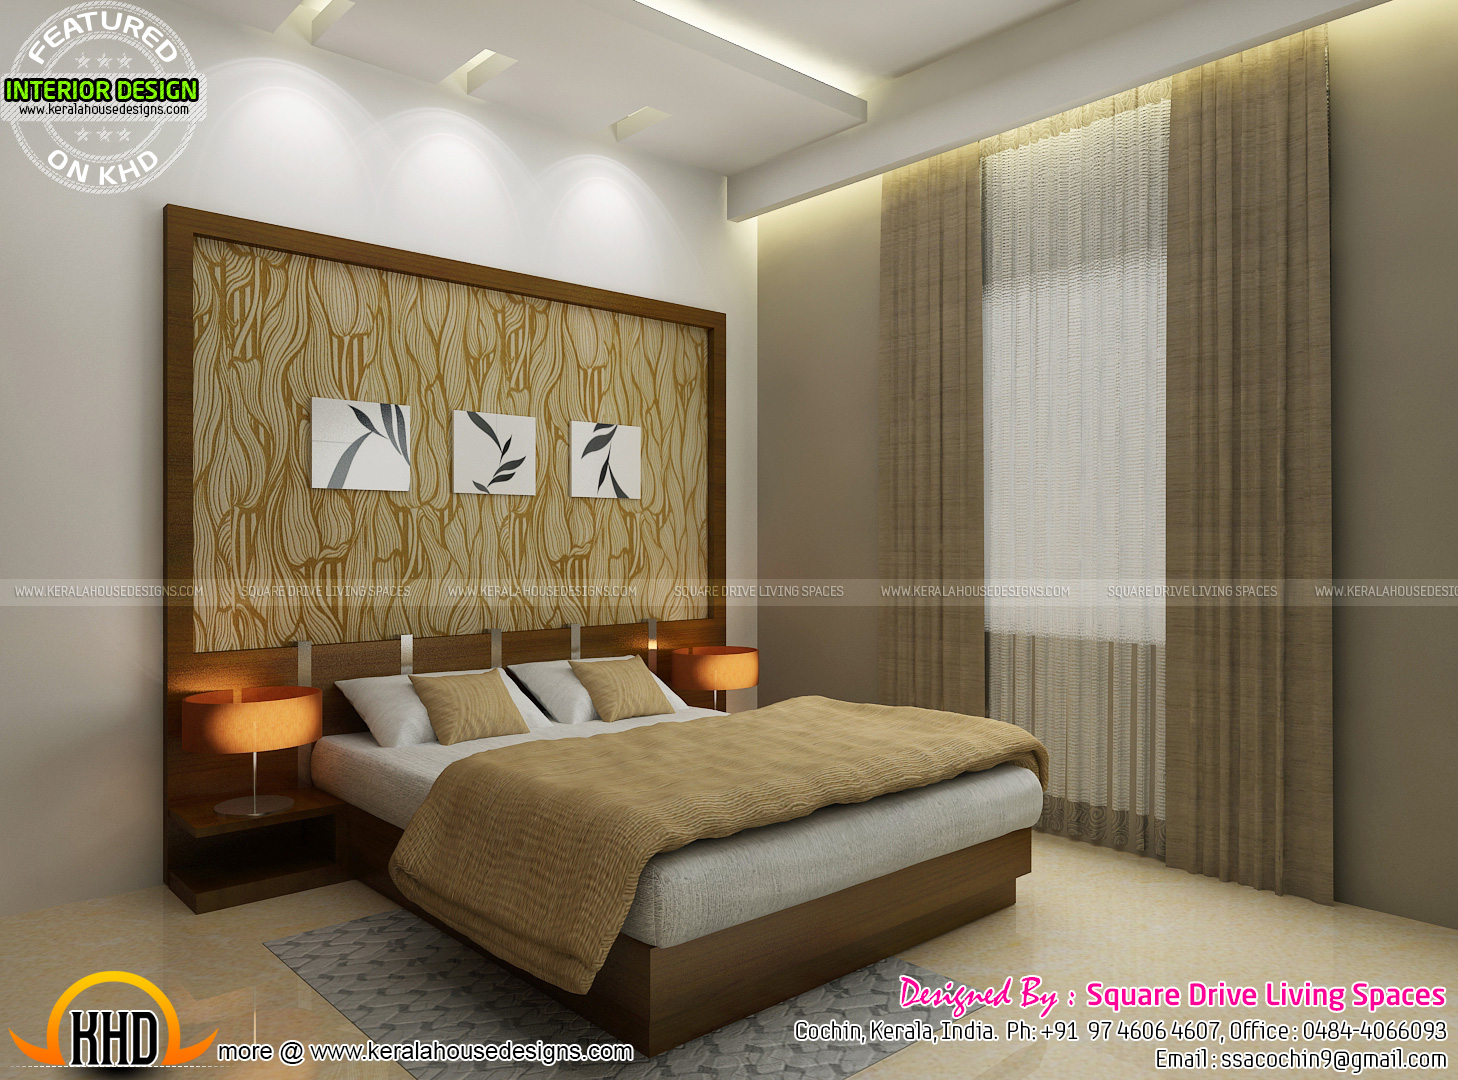 Interior designs of master bedroom living kitchen and for Bedroom images interior designs